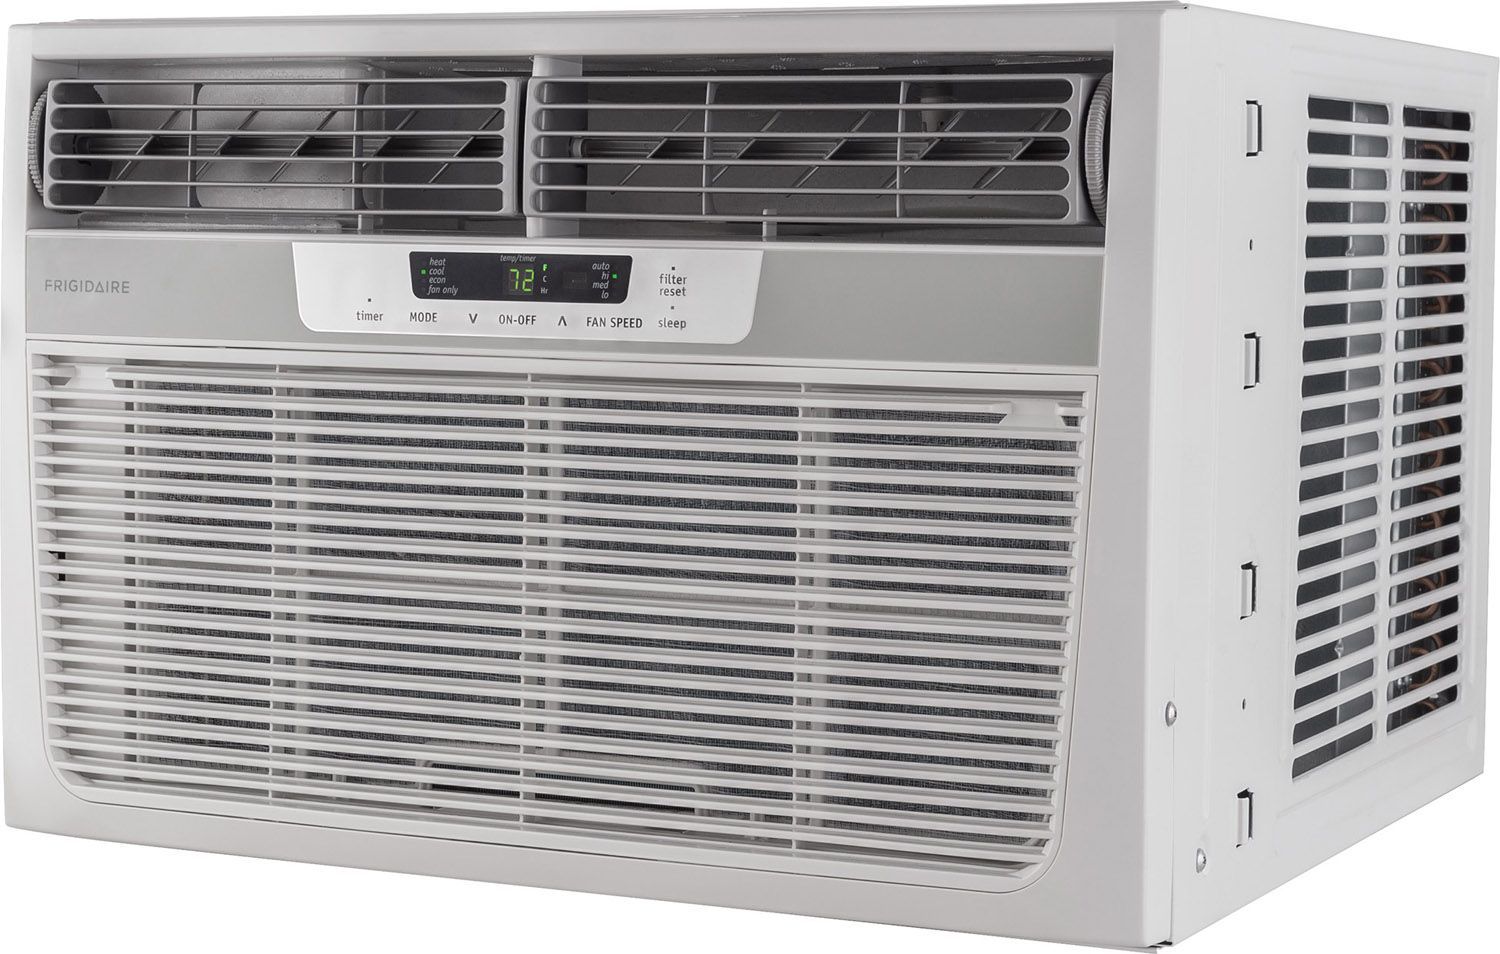 Frigidaire window air conditioner ffrh1222r2 for 11000 btu window air conditioner